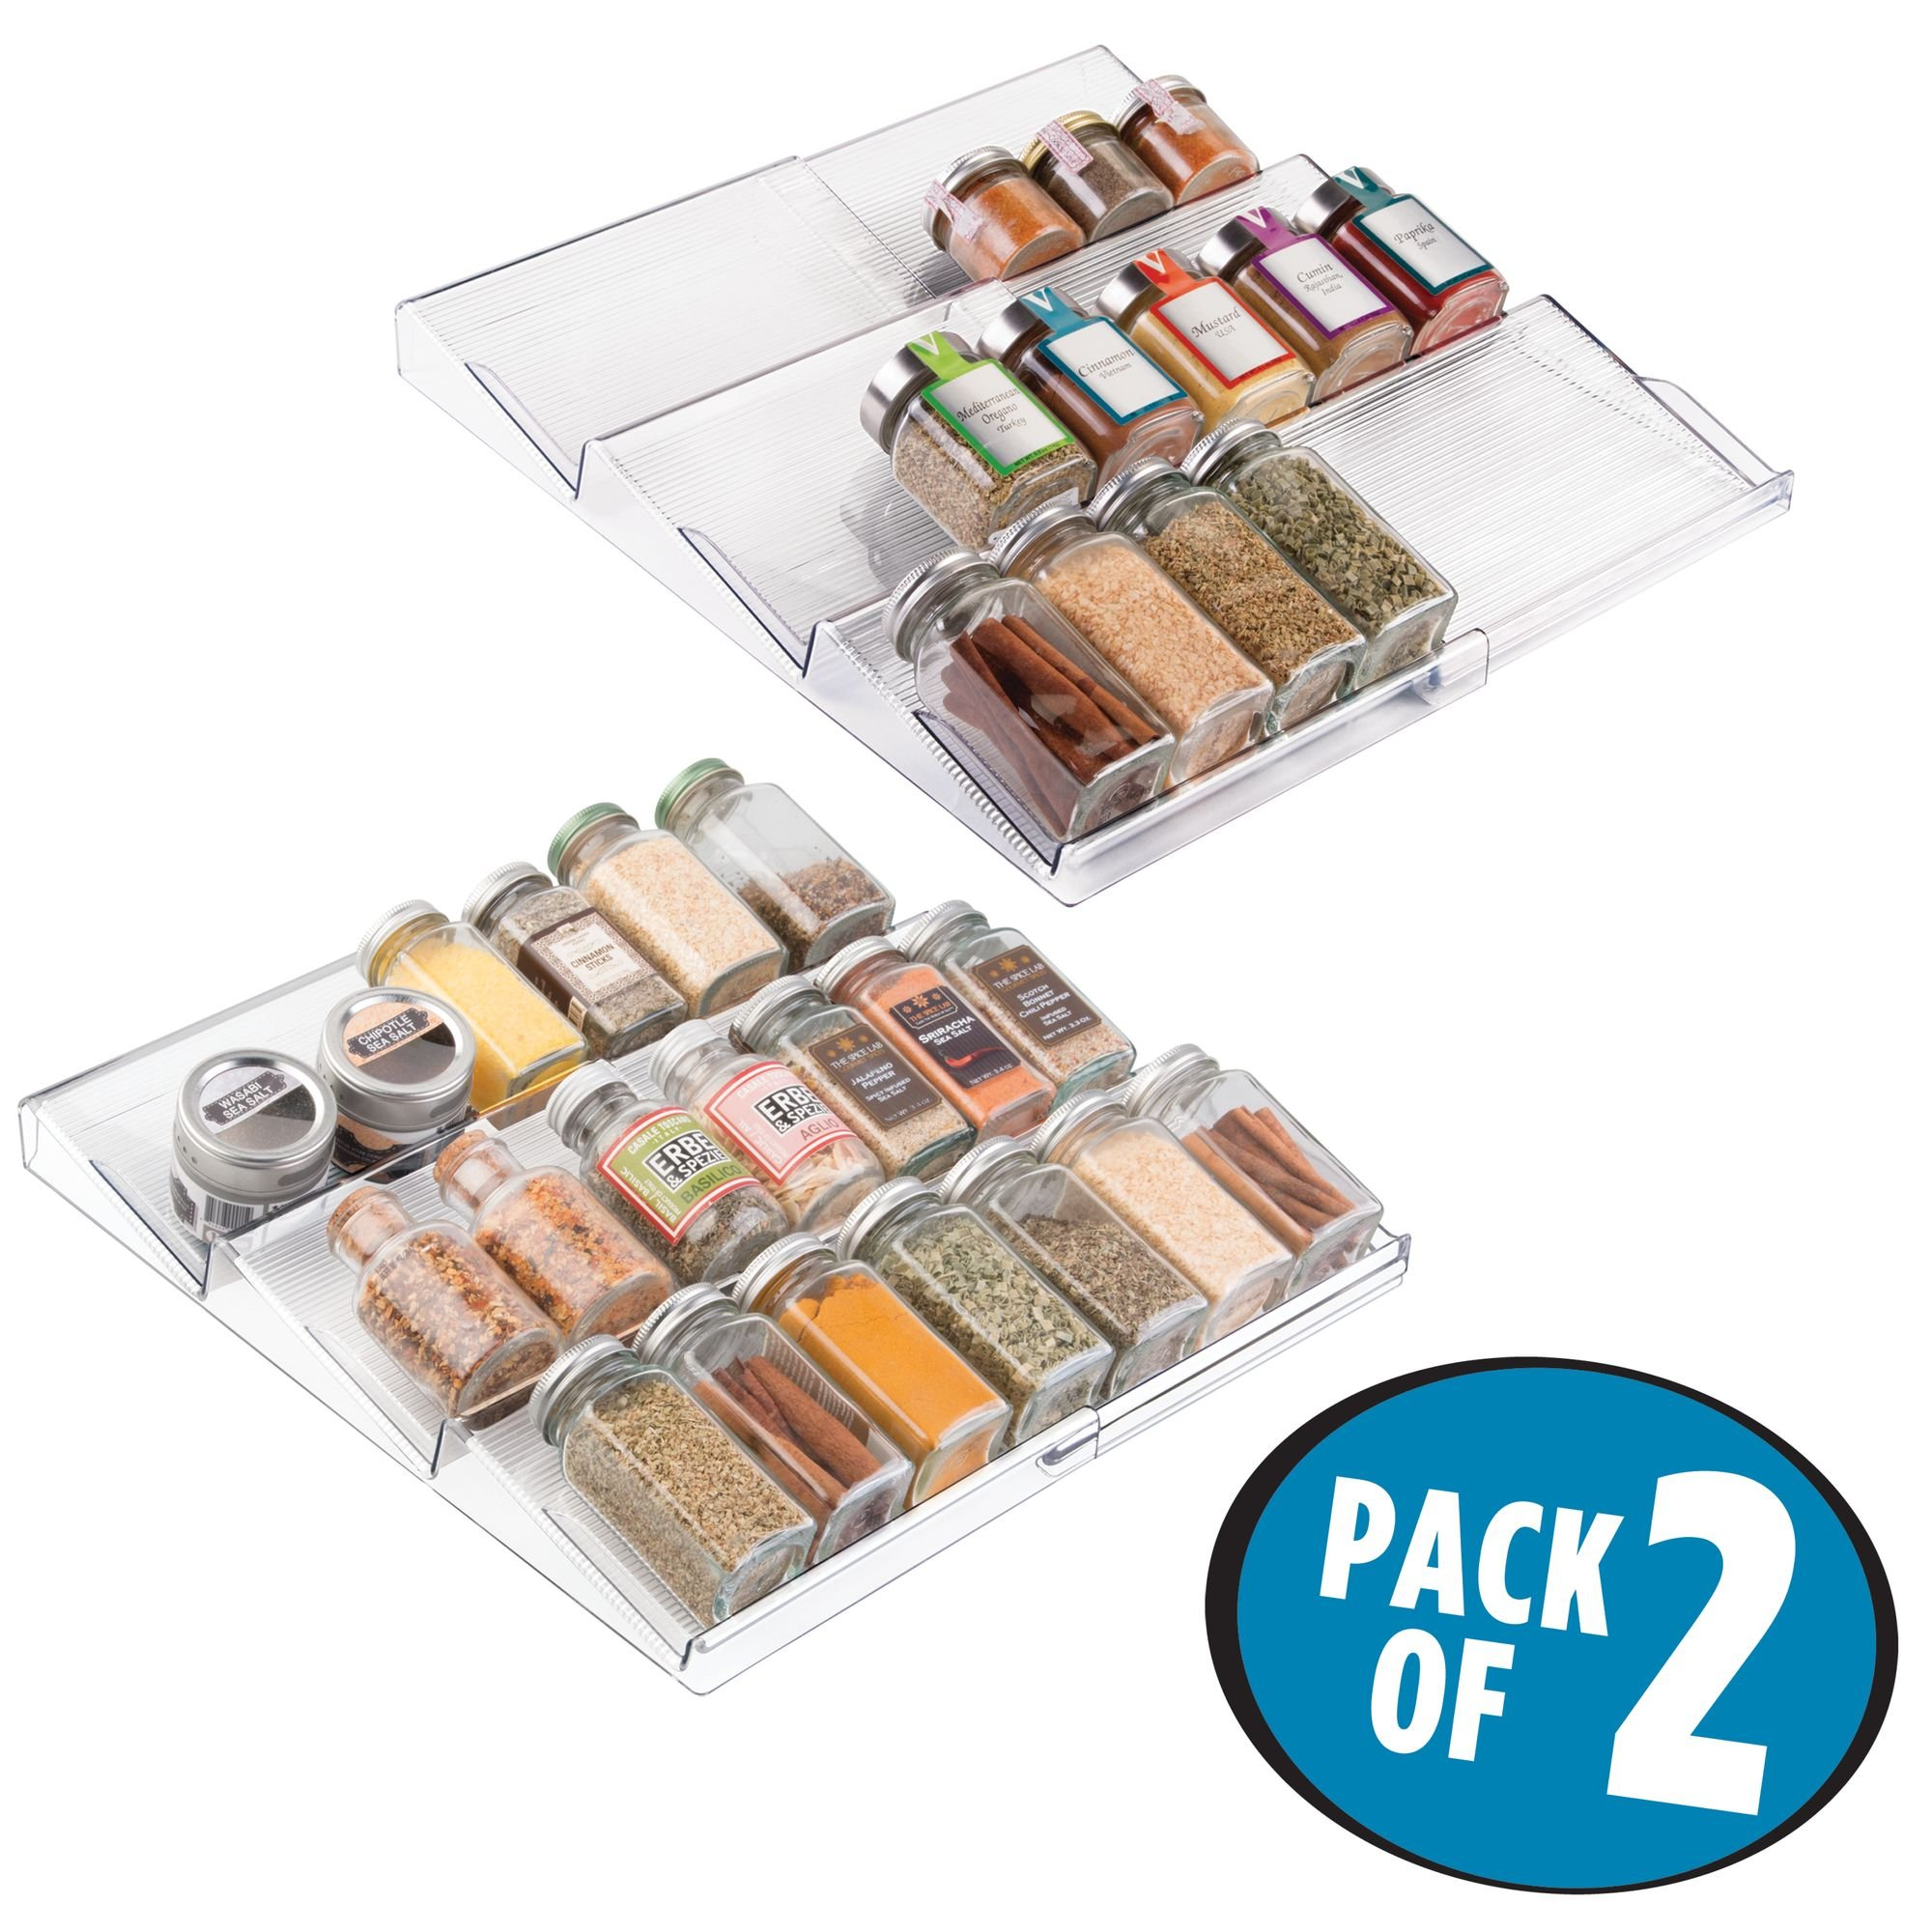 mDesign Adjustable, Expandable Spice Rack Drawer Organizer Tray Insert for Kitchen Cabinet Drawers - 3 Slanted Storage Shelves - Garlic, Onion, Cinnamon, Salt - BPA Free, Food Safe - Pack of 2, Clear by mDesign